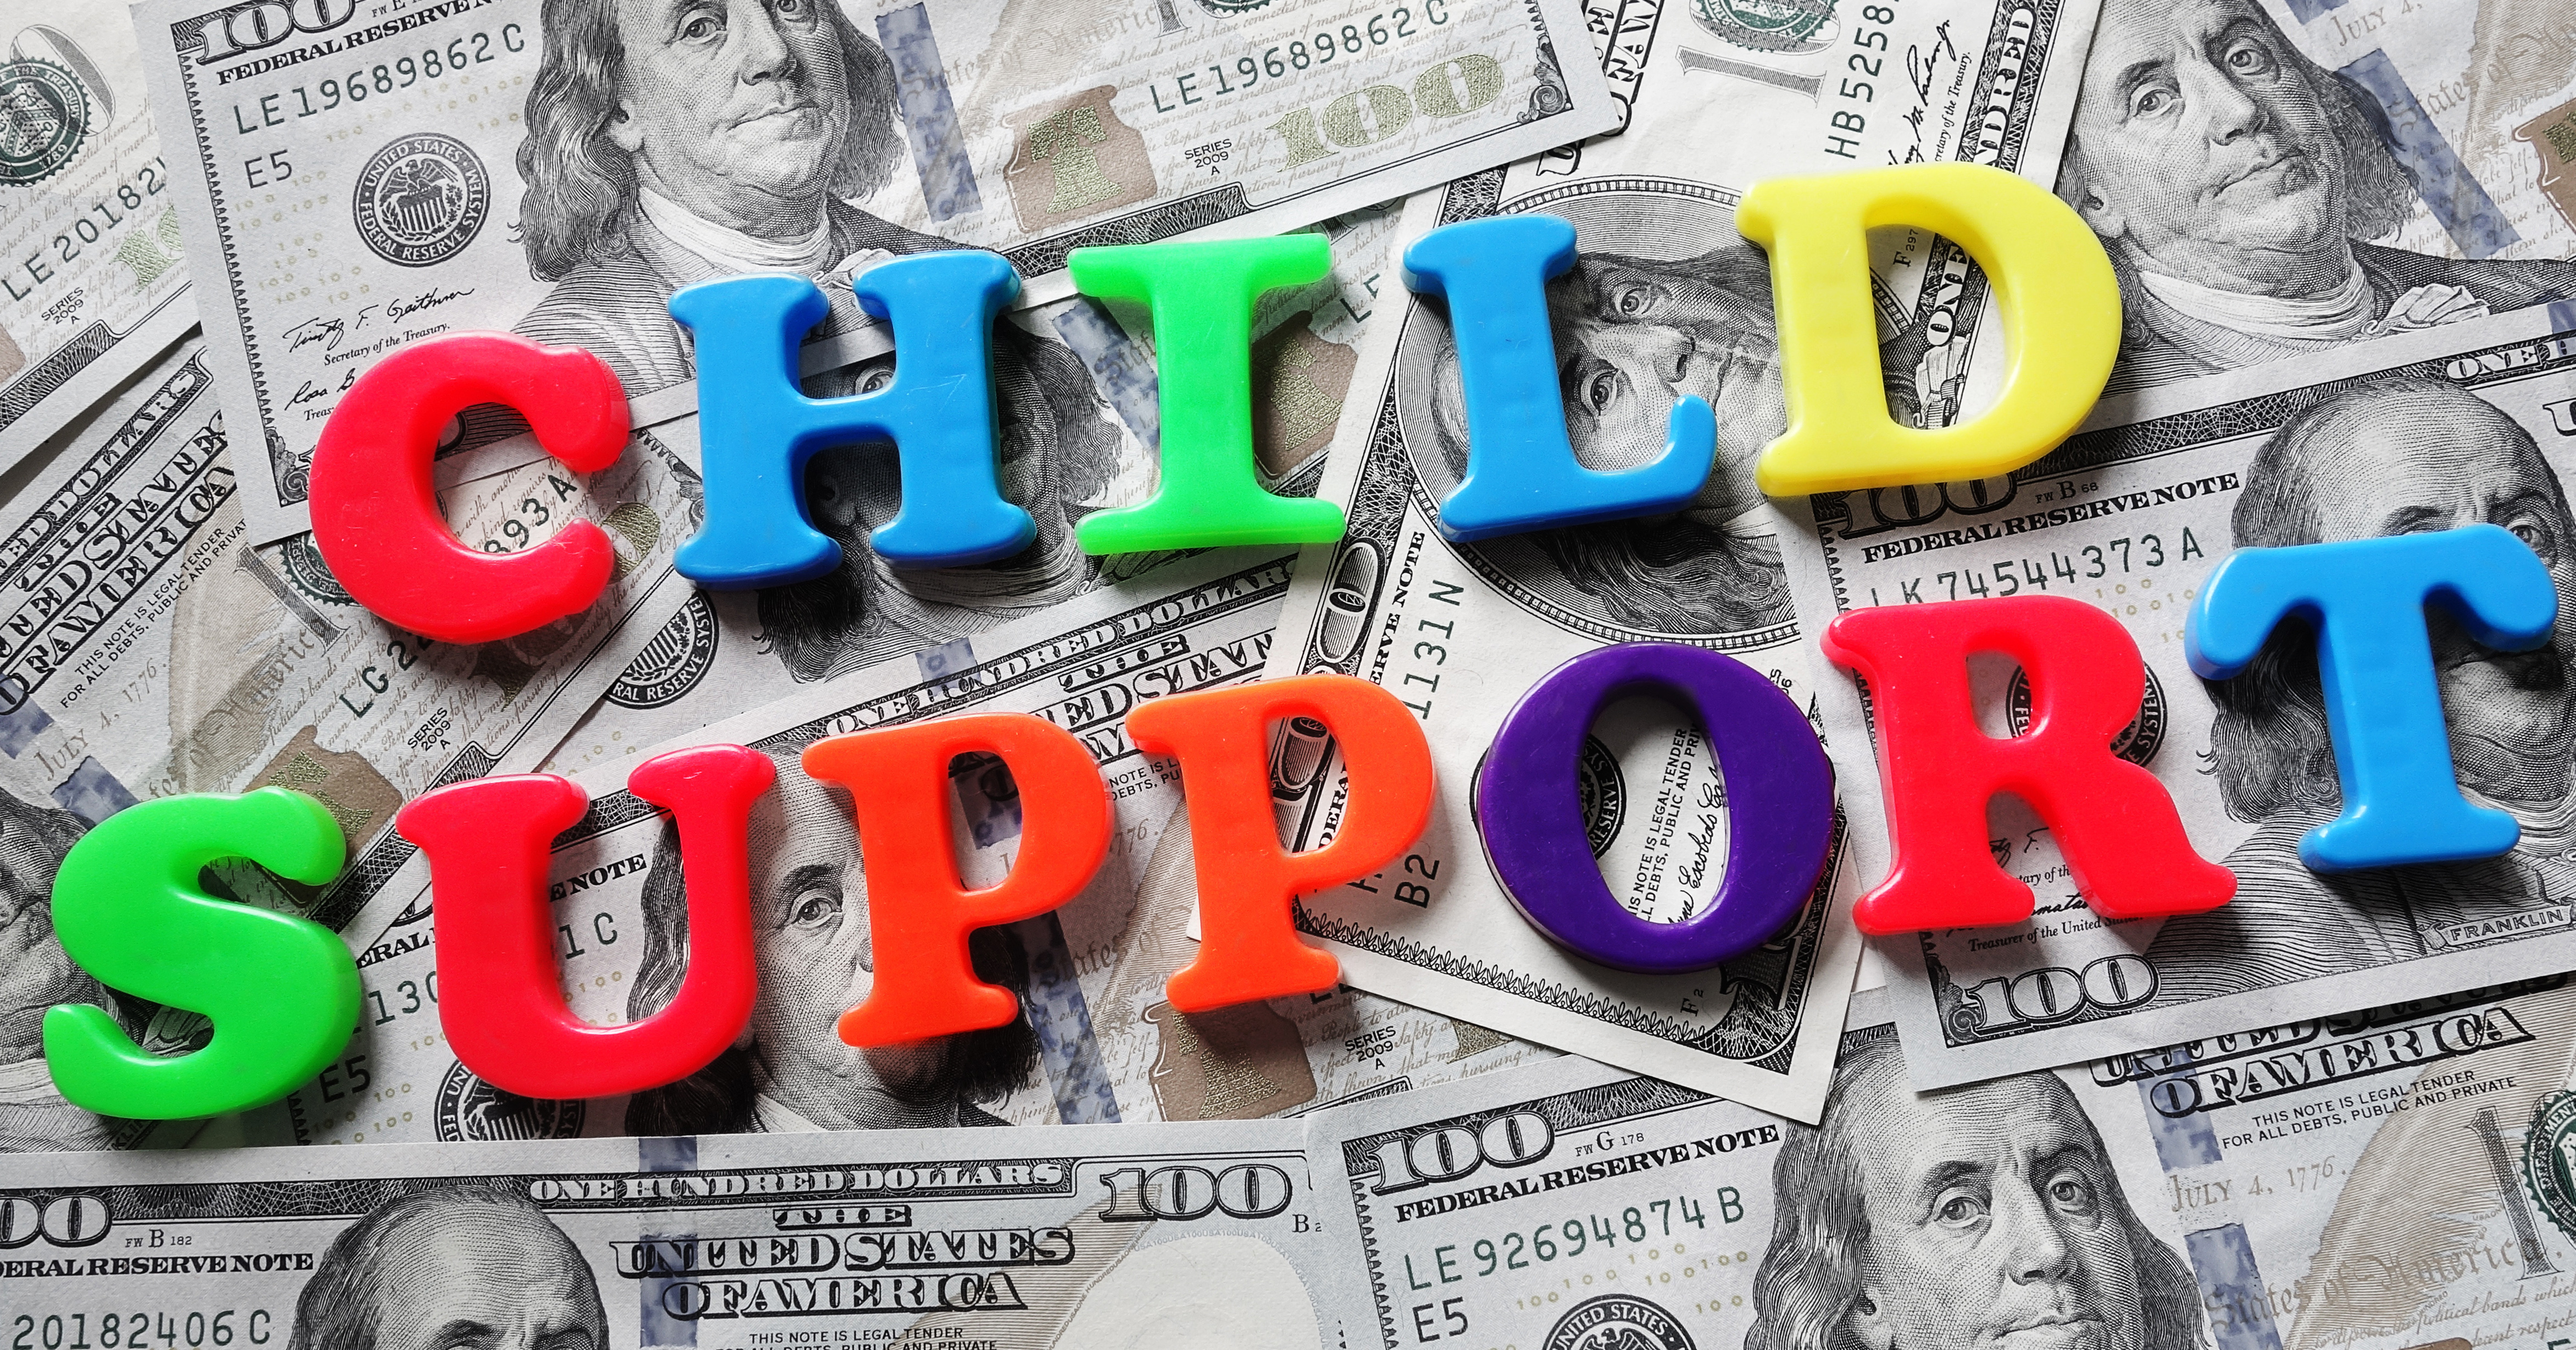 Child support letters and cash